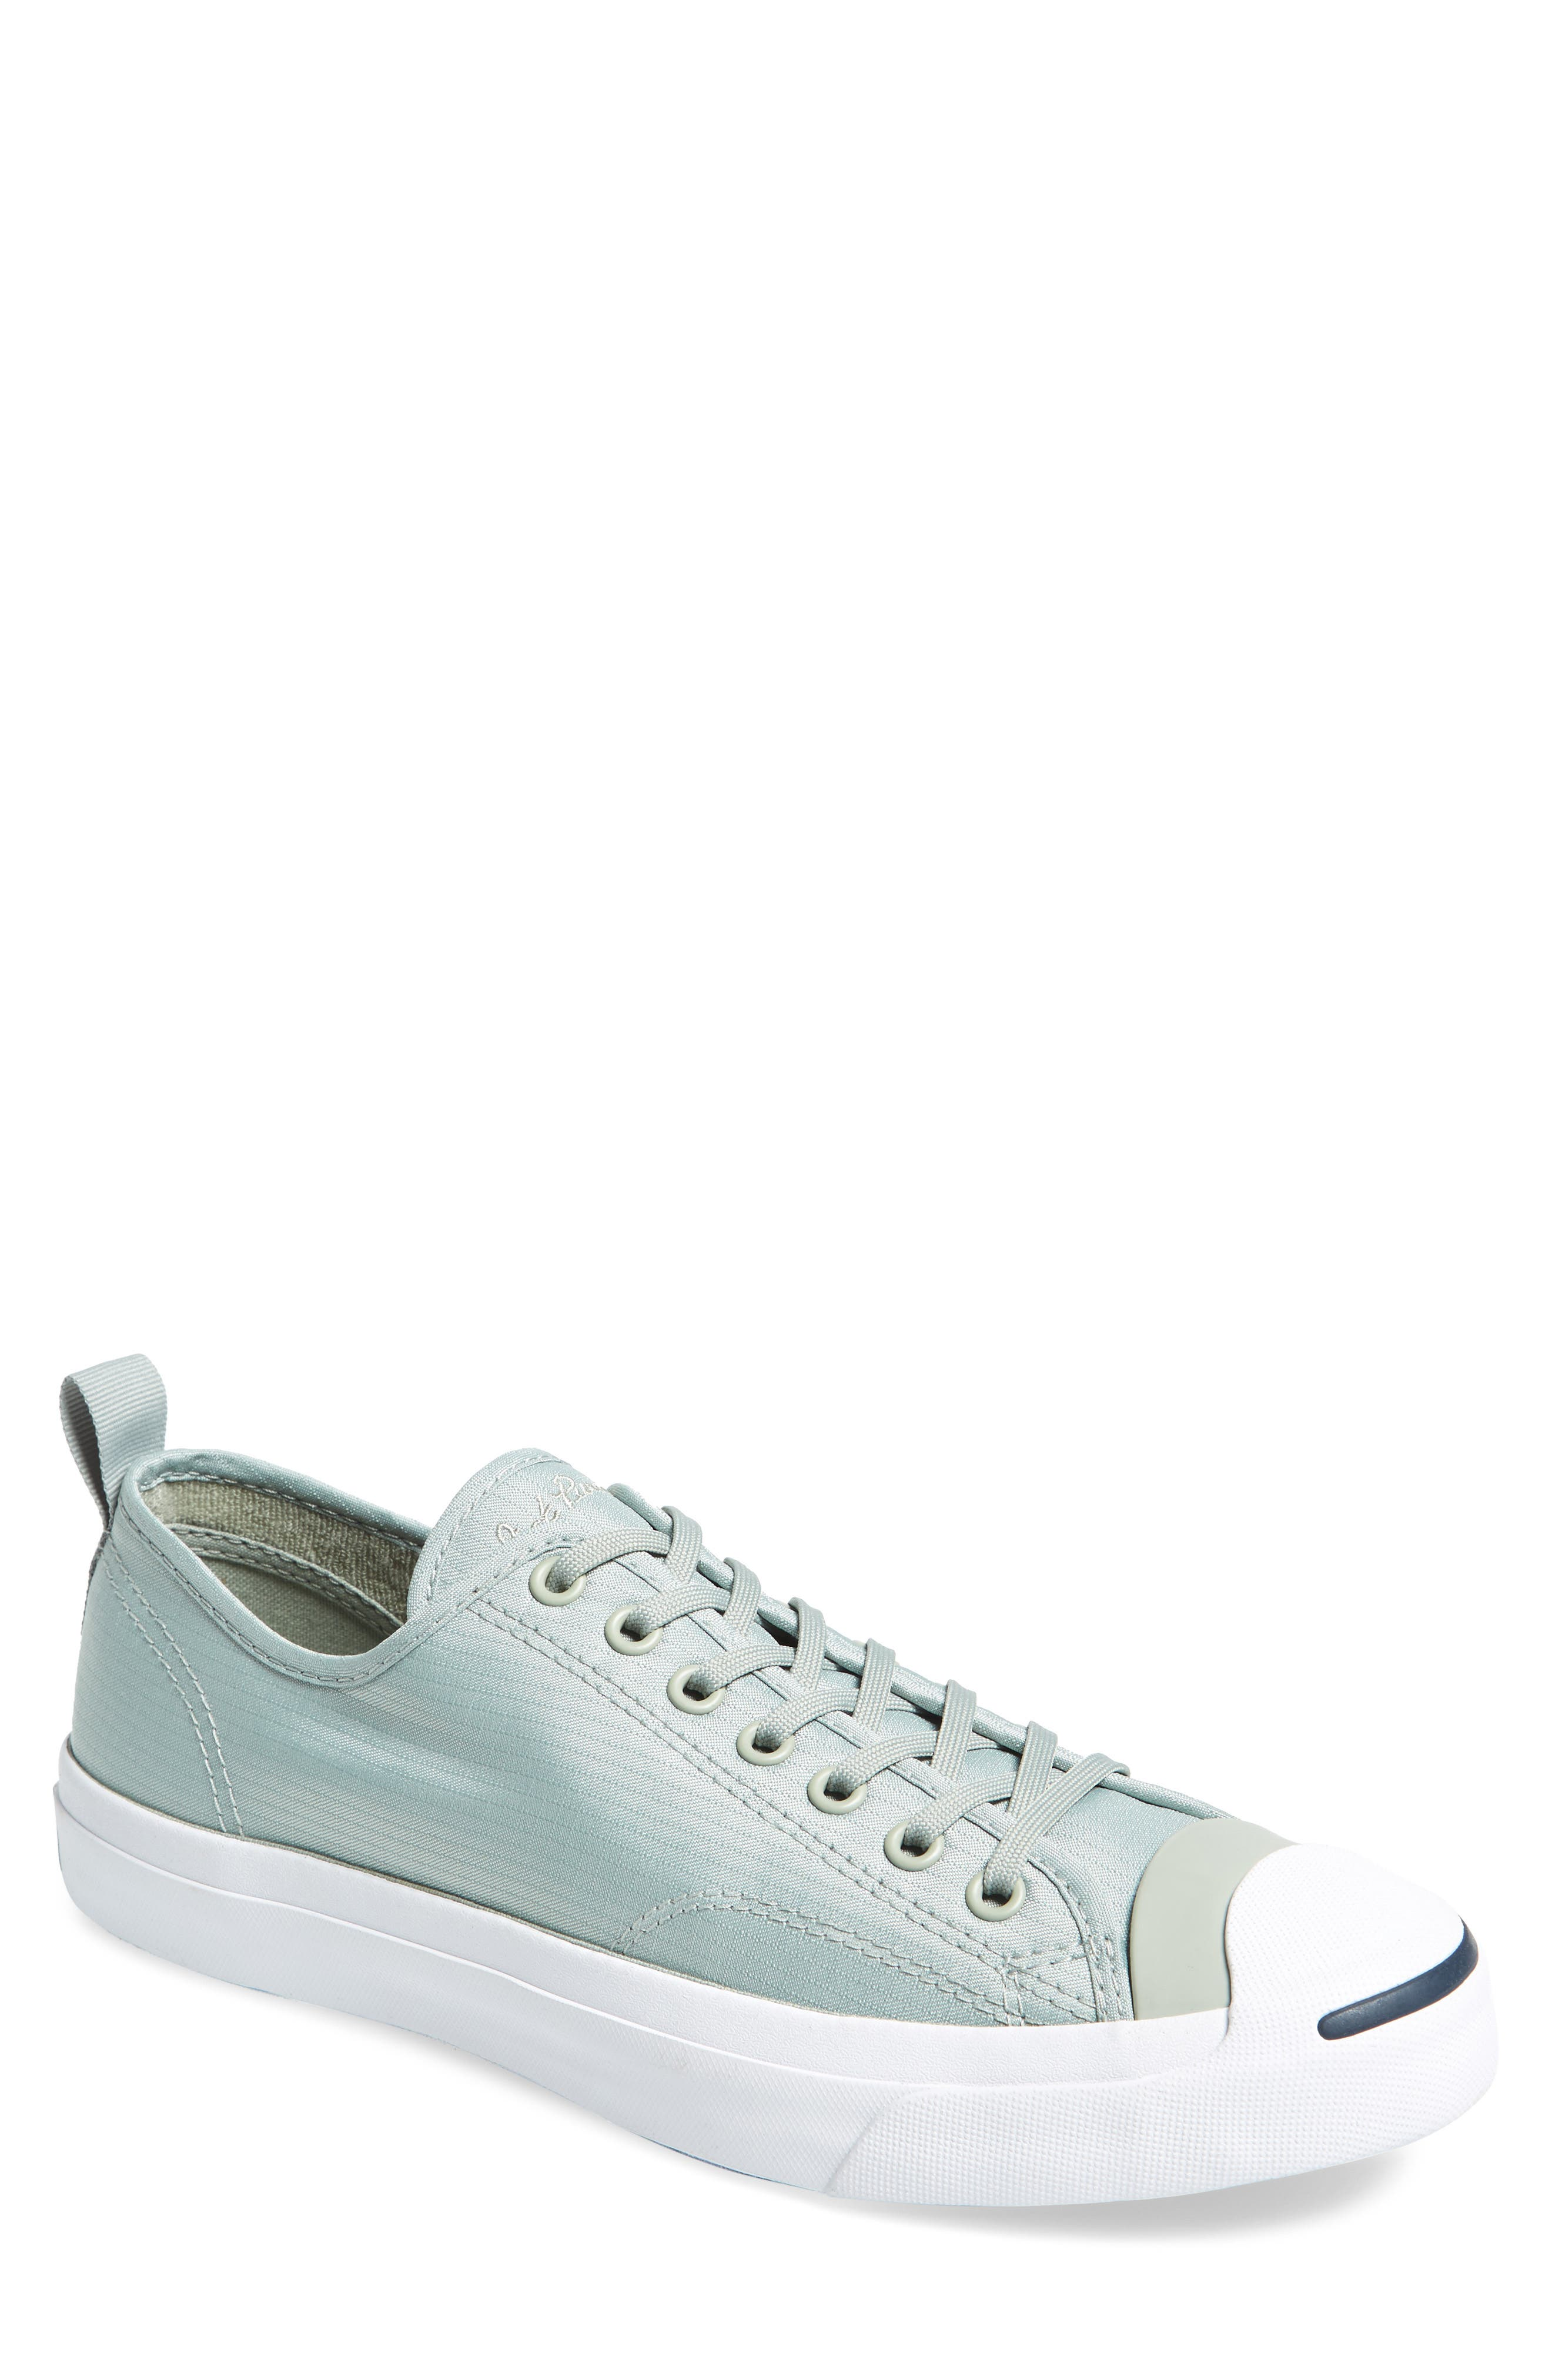 Jack Purcell Ripstop Sneaker,                             Main thumbnail 2, color,